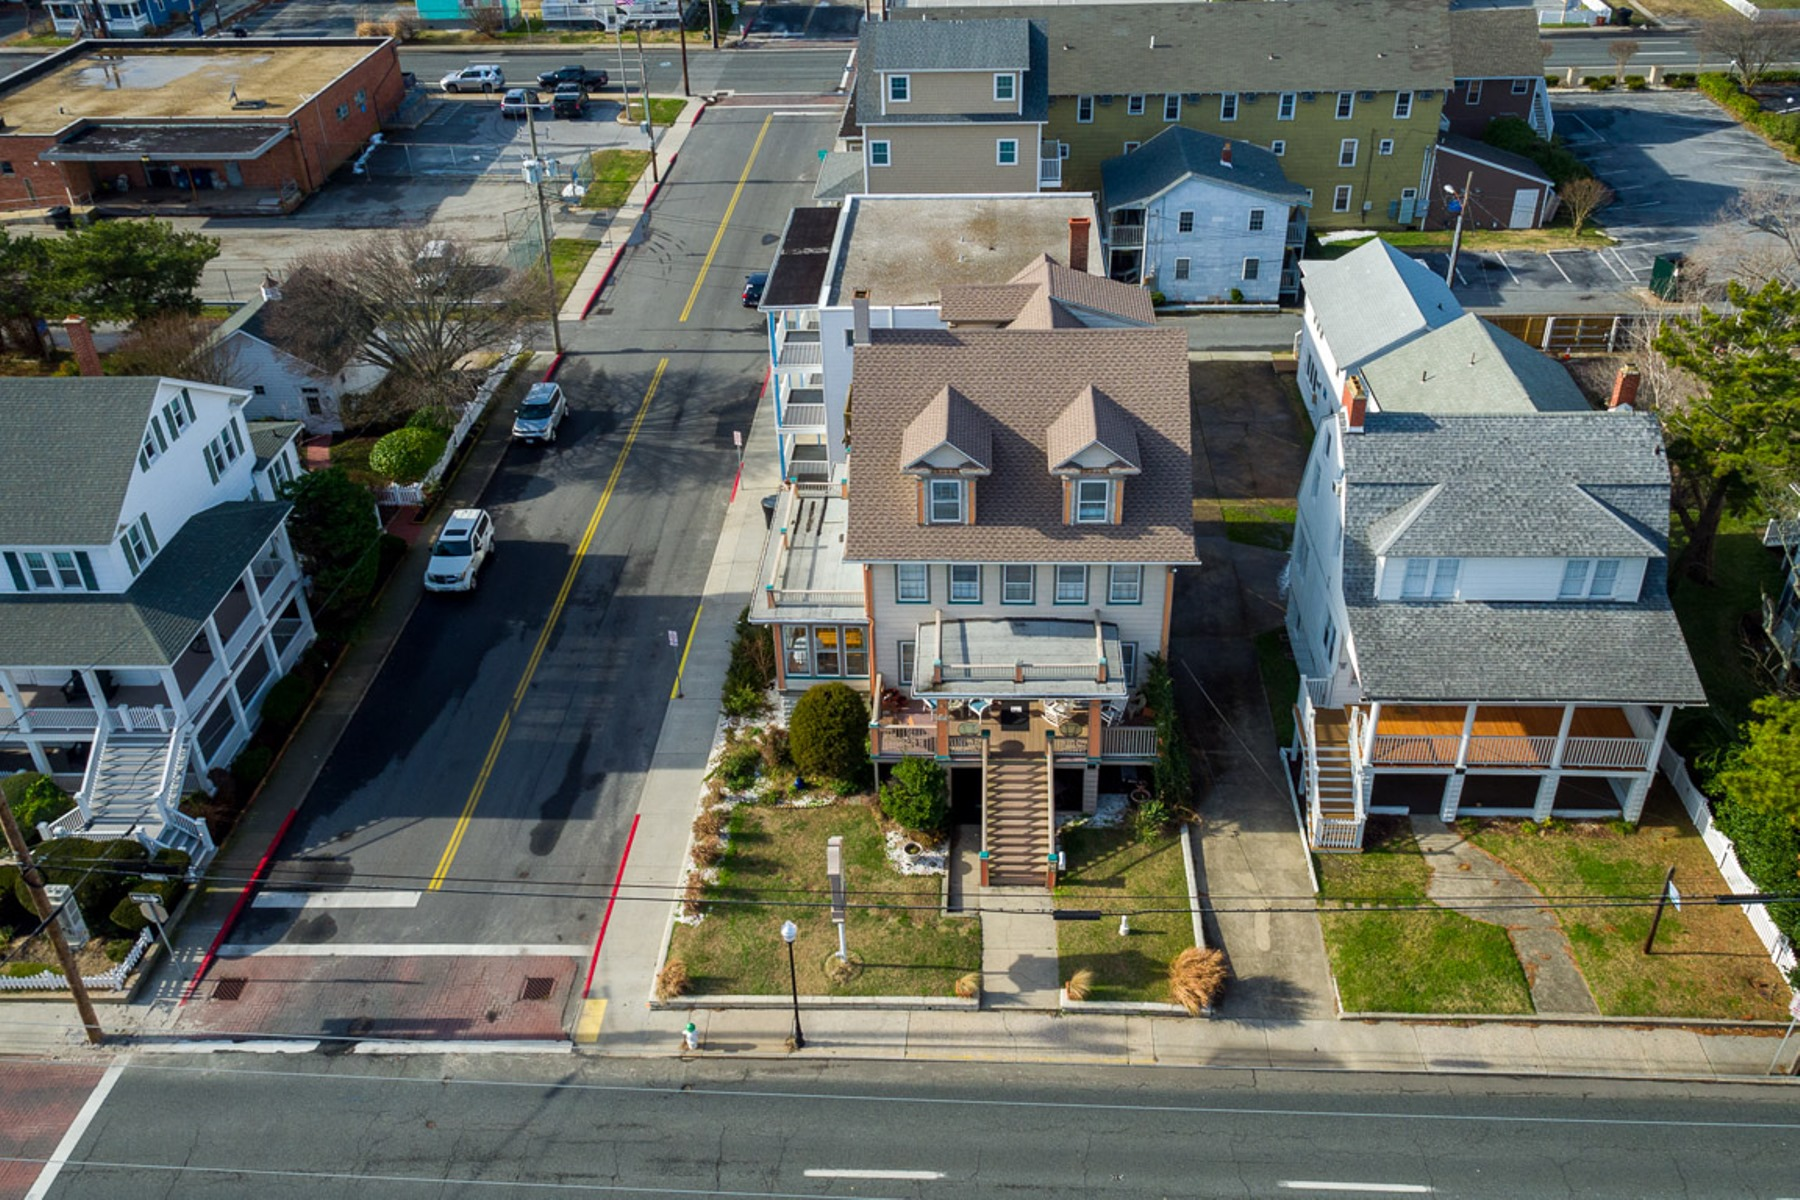 Single Family Home for Sale at 501 Baltimore Avenue, Ocean City Ocean City, Maryland 21842 United States